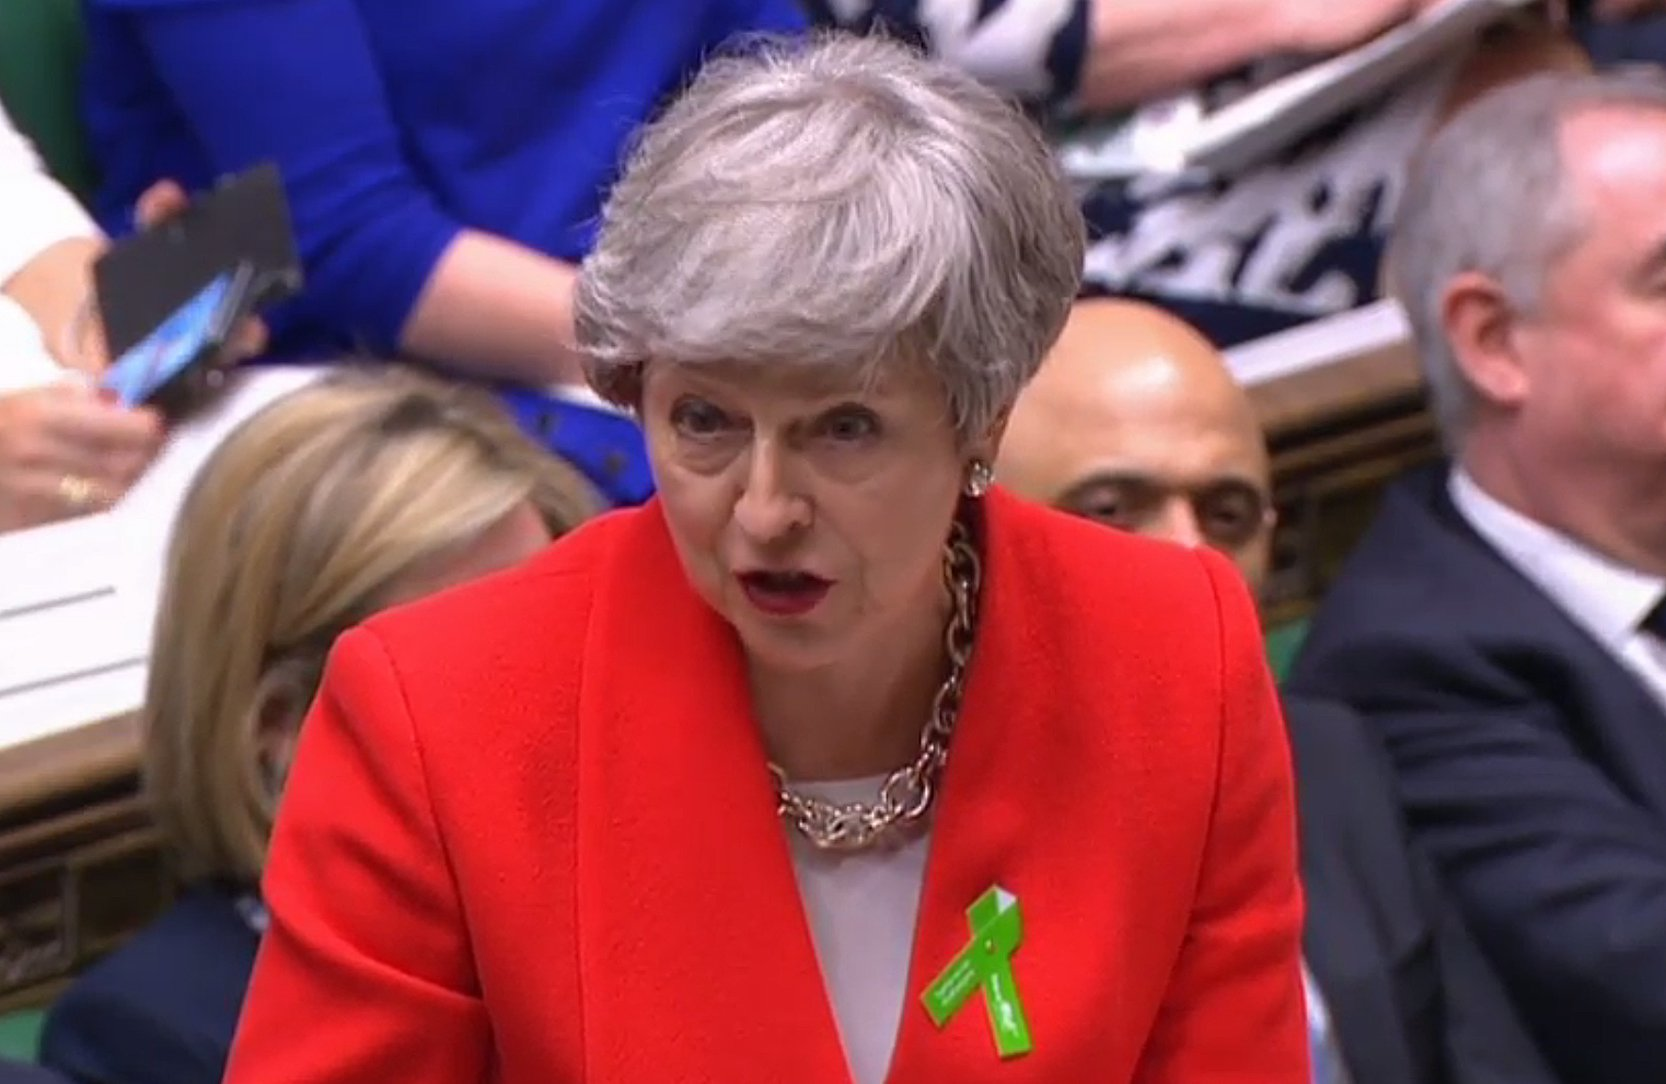 """A video grab from footage broadcast by the UK Parliament's Parliamentary Recording Unit (PRU) shows Britain's Prime Minister Theresa May speaking during the weekly Prime Minister's Questions (PMQs) session in the House of Commons in London on May 15, 2019. (Photo by HO / various sources / AFP) / RESTRICTED TO EDITORIAL USE - MANDATORY CREDIT """" AFP PHOTO / PRU """" - NO USE FOR ENTERTAINMENT, SATIRICAL, MARKETING OR ADVERTISING CAMPAIGNSHO/AFP/Getty Images"""